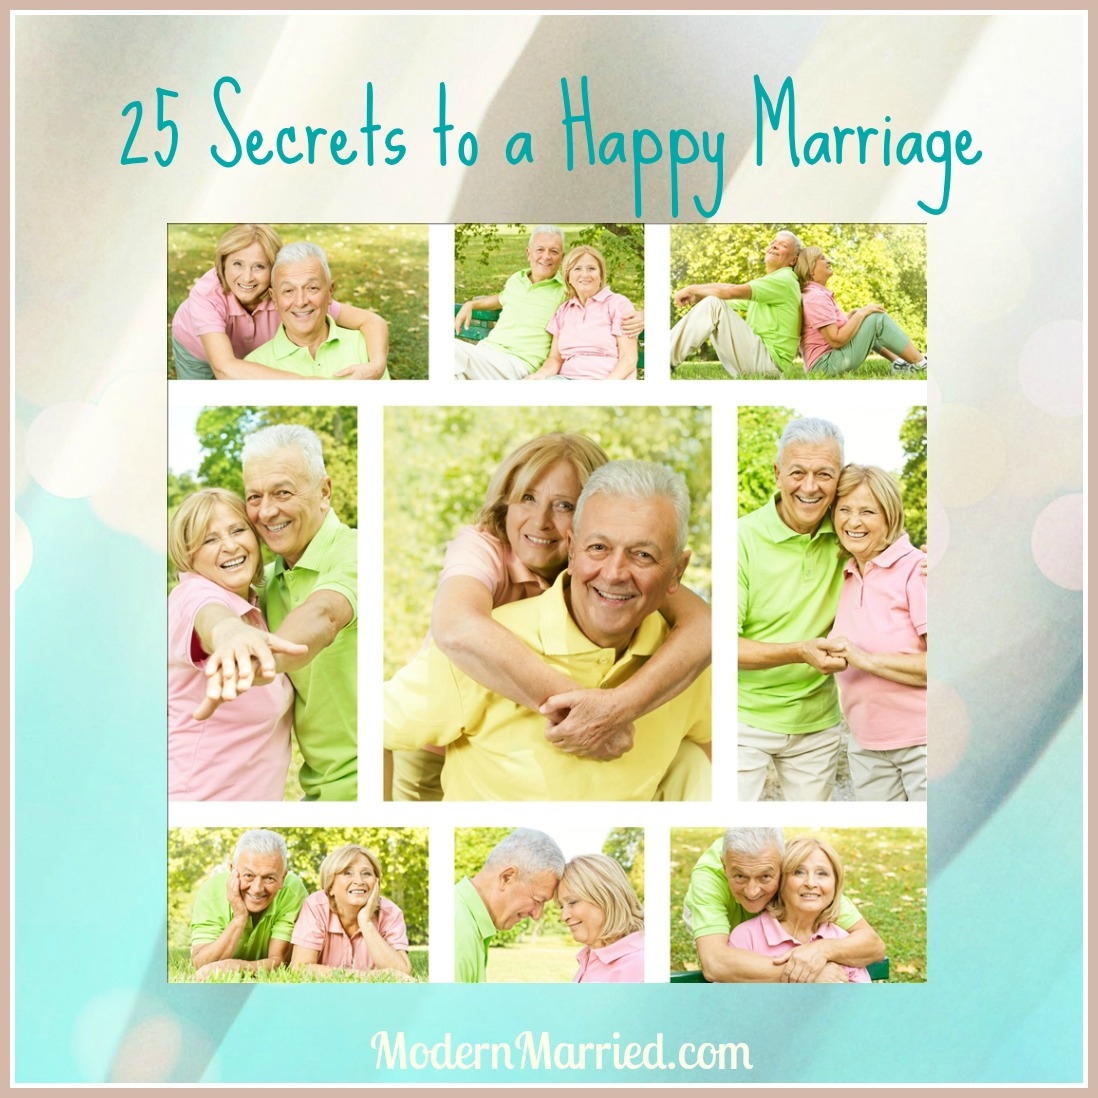 marriage advice for newlyweds, secrets to a happy marraige